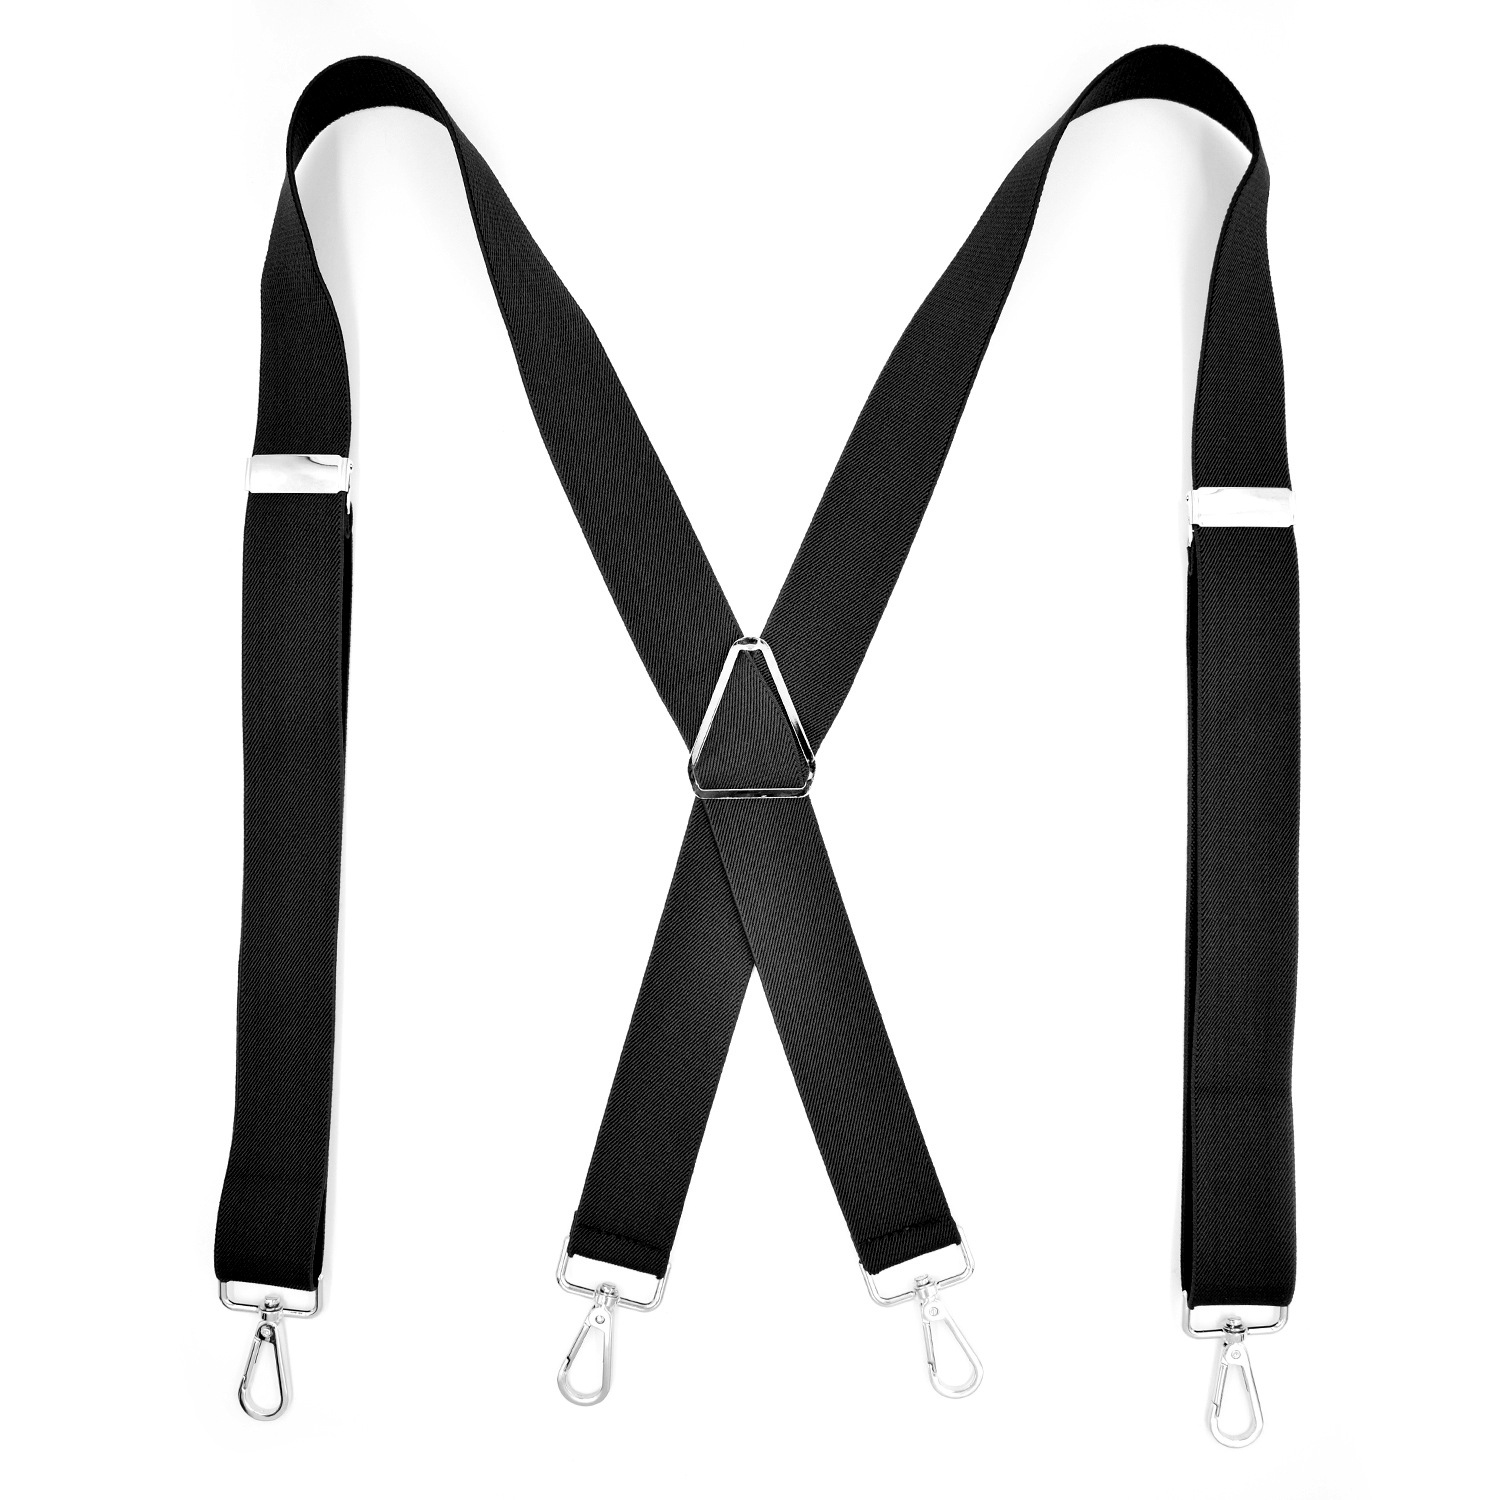 Fashion Suspenders Braces For Women Men With Snap Hooks On Belts Loops Heavy Duty Big Tall Adjustable Elastic Suspender Brace